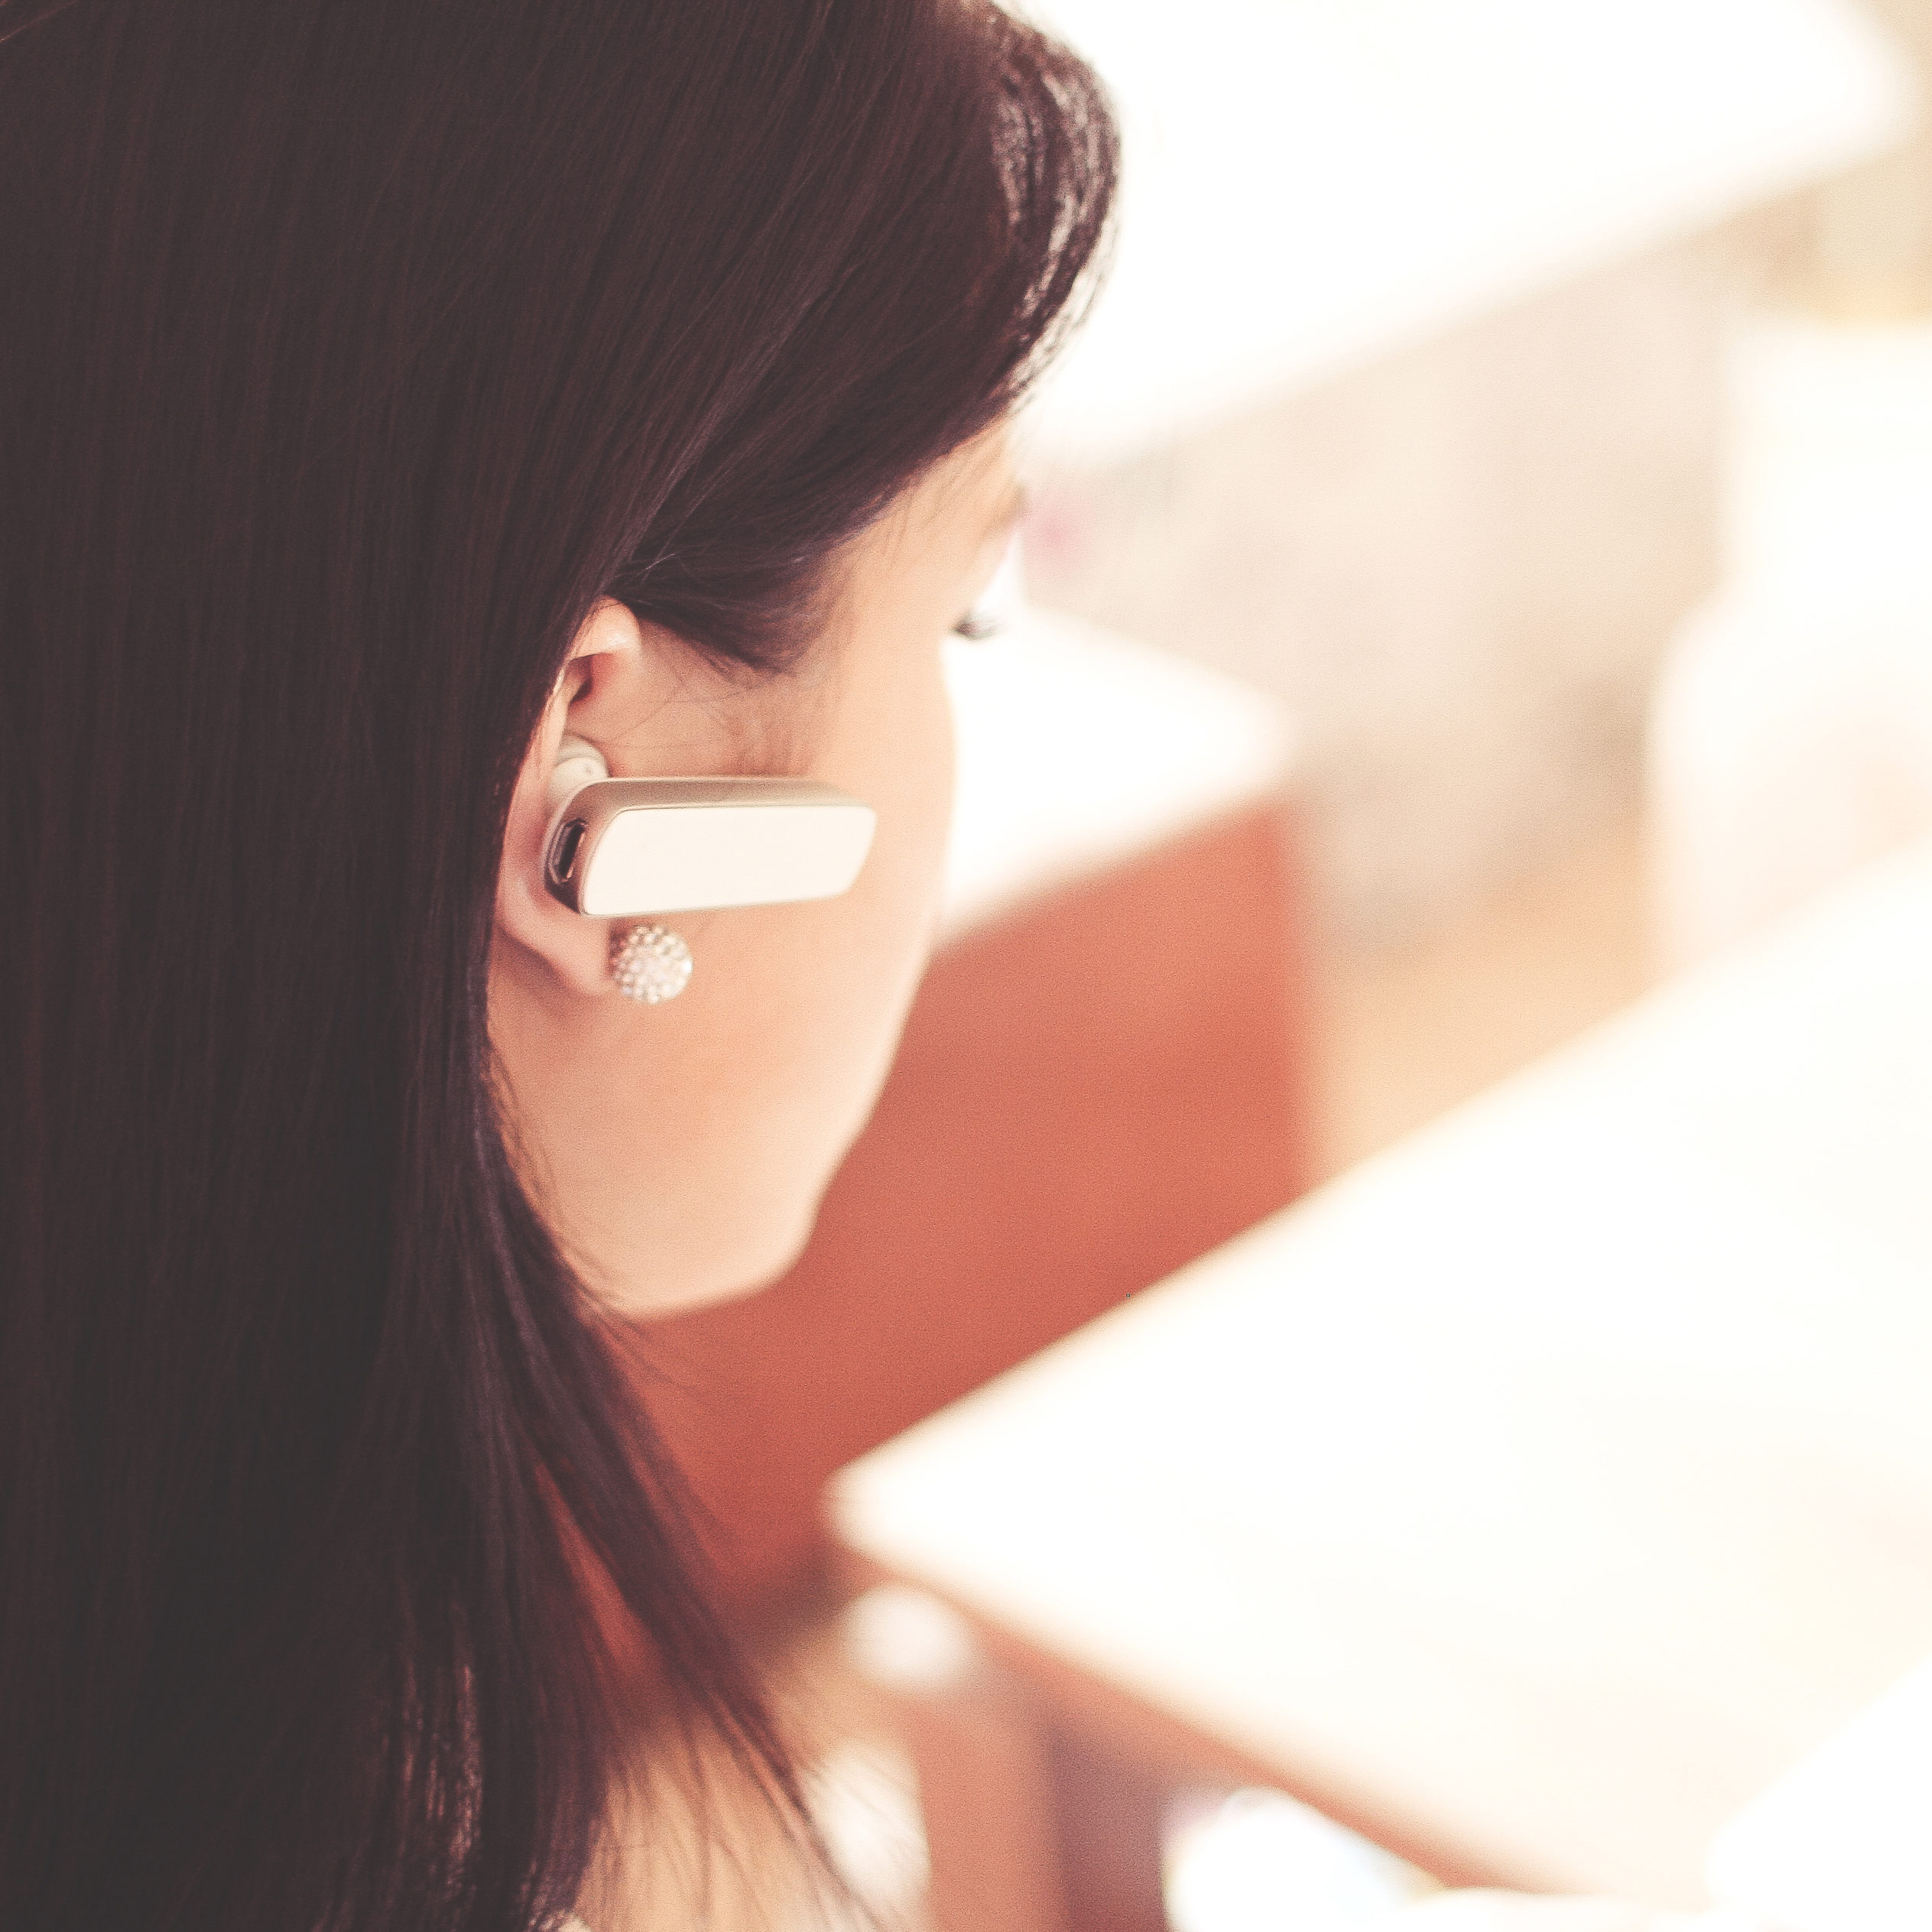 woman with bluetooth in her ear